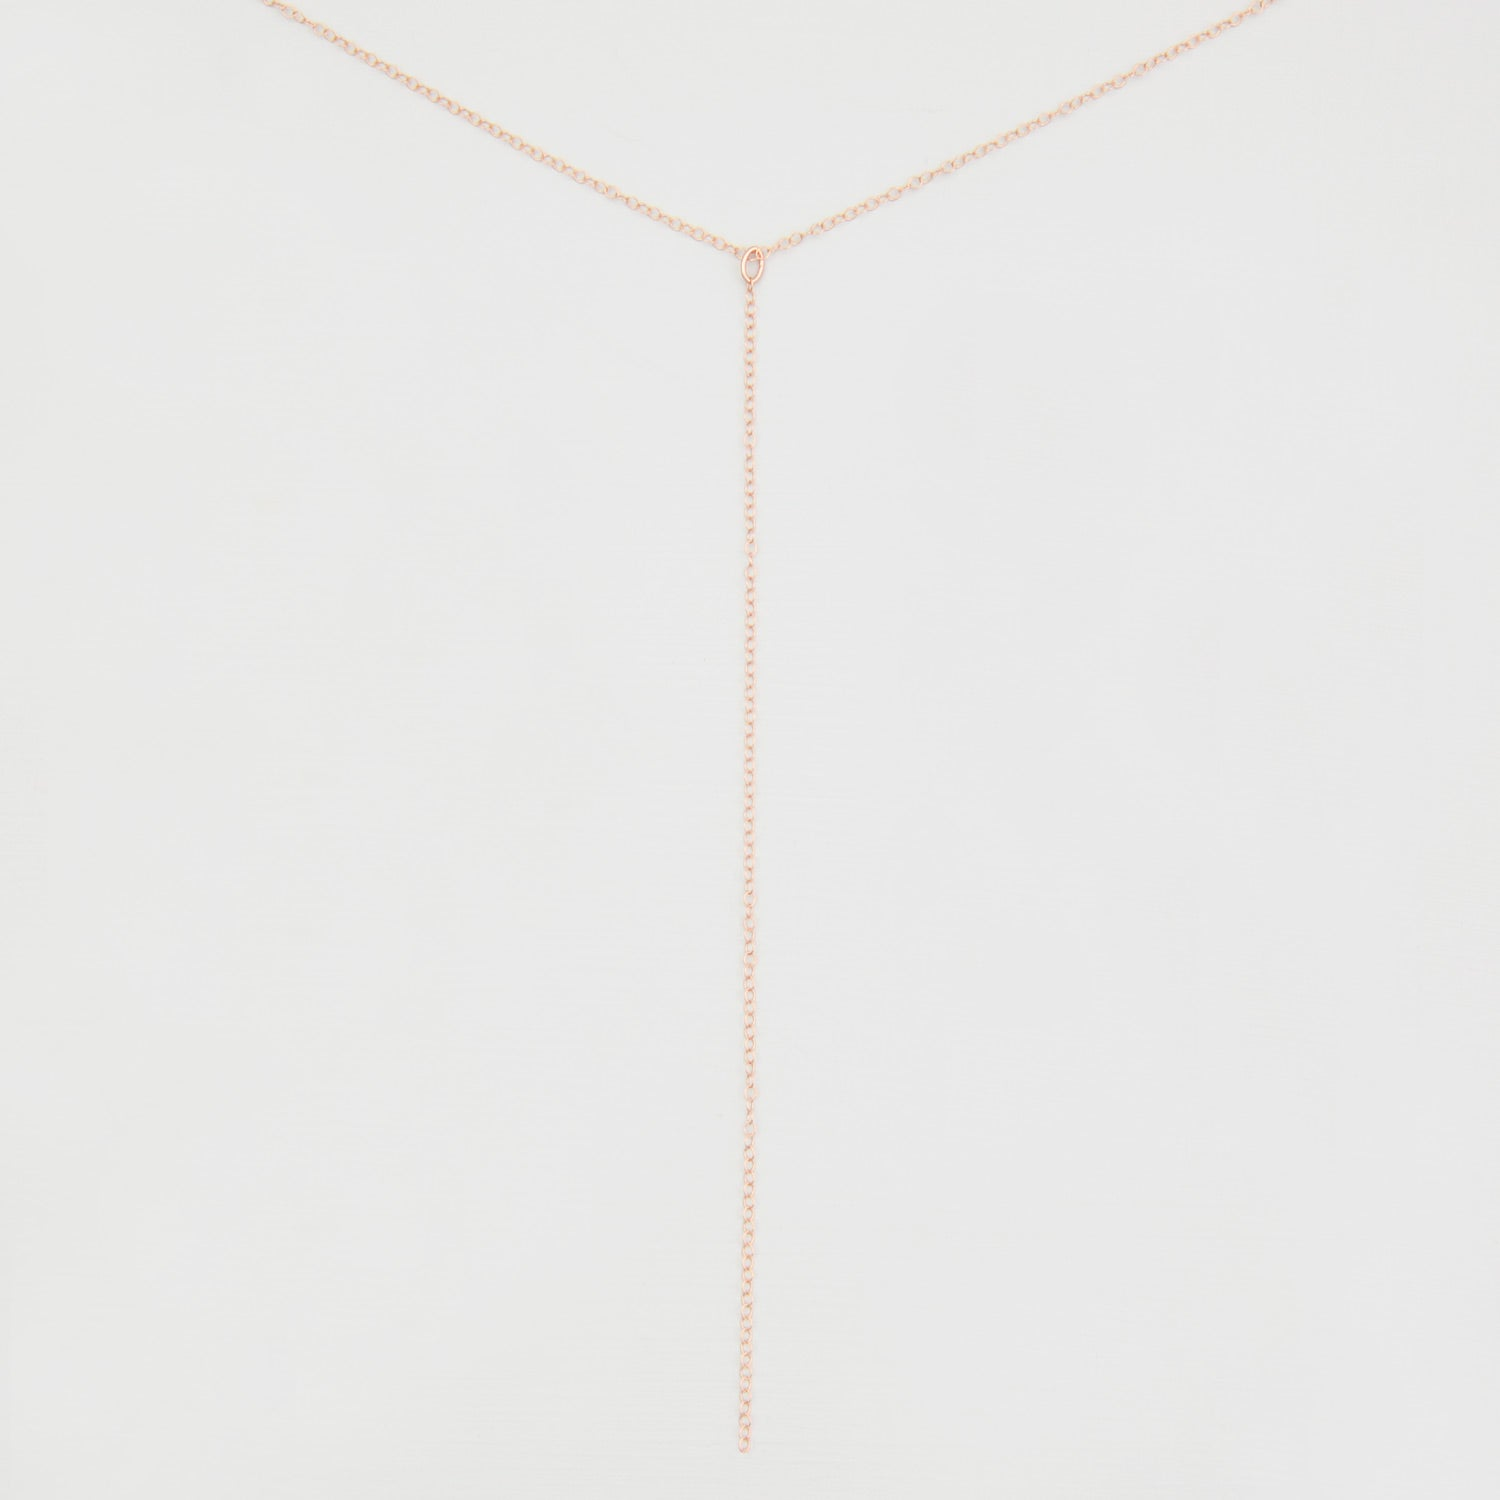 Y Lariat Necklace 'Kaia'